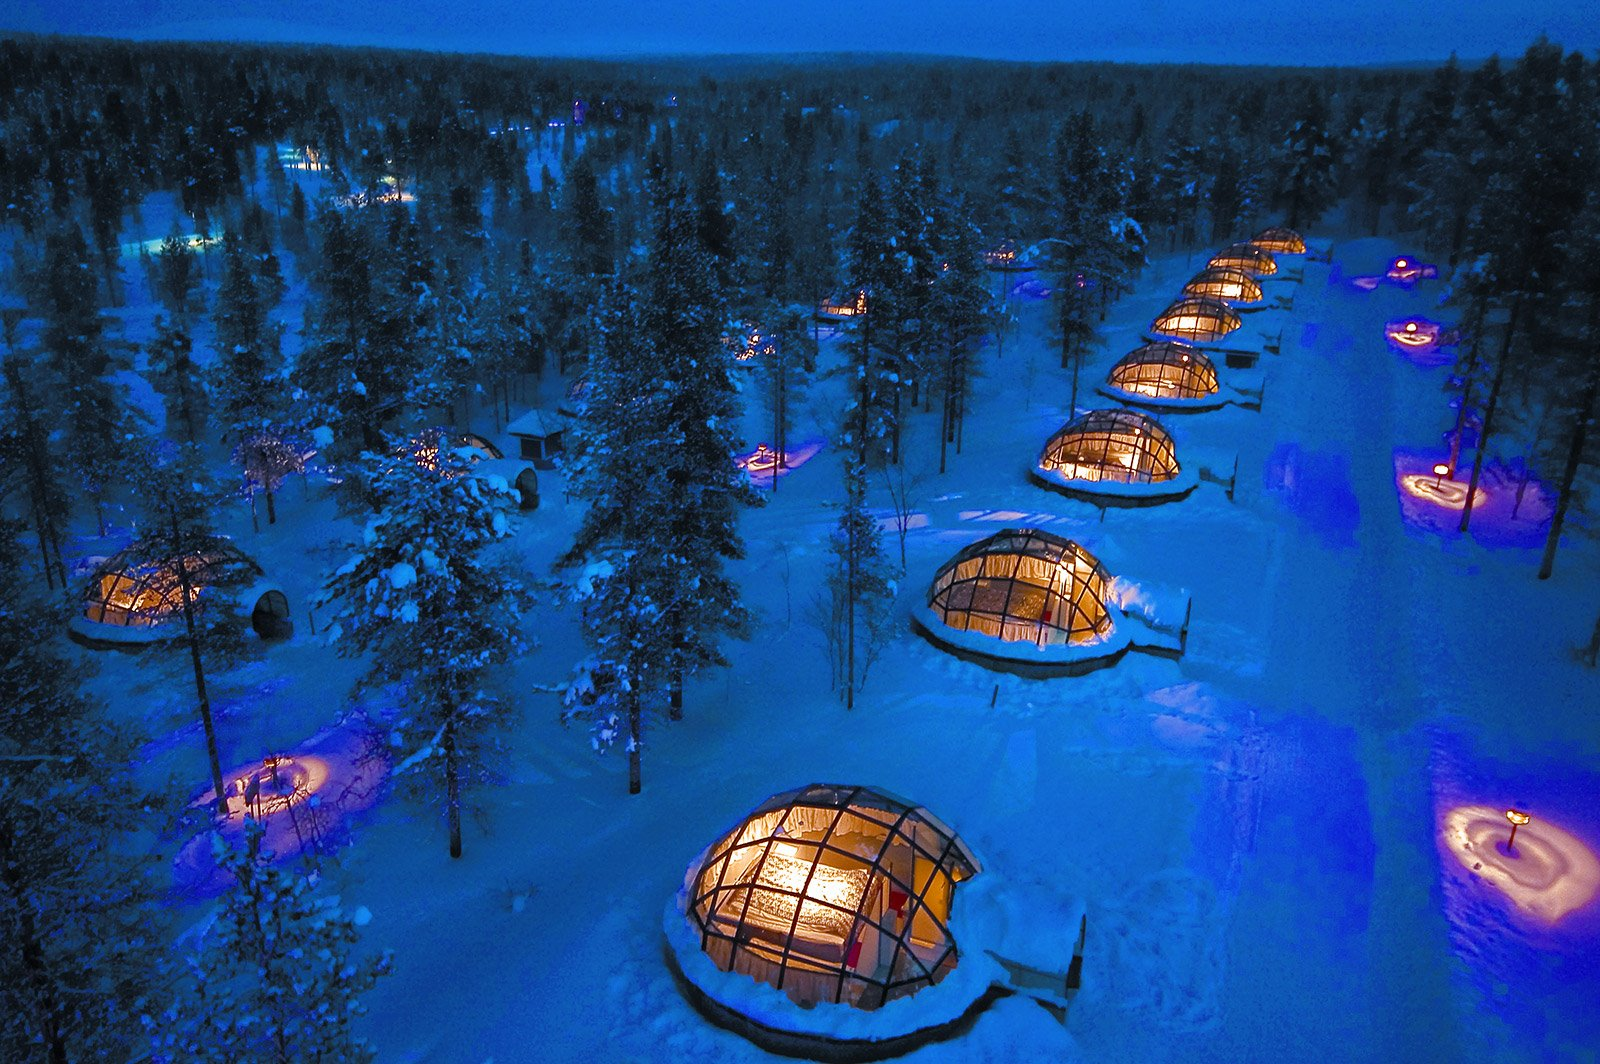 Igloos-view-from-air-Kakslauttanen-JPG. Kakslauttanen Arctic Resort